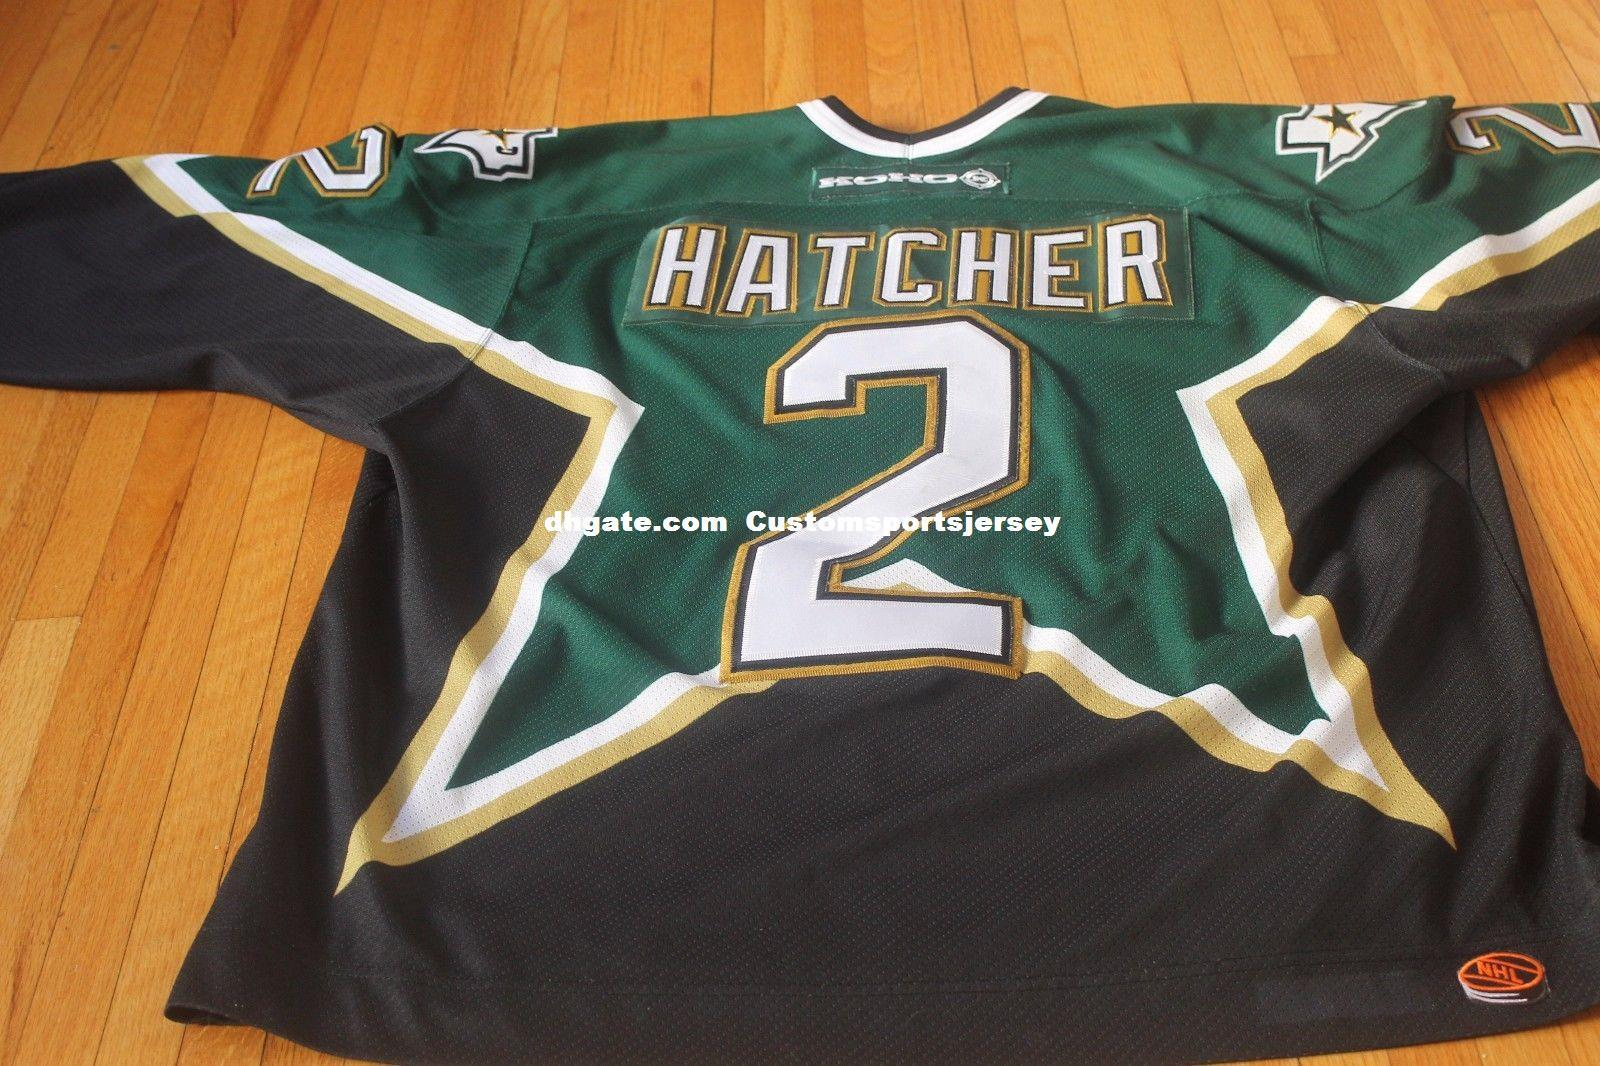 c1235296b 2019 Cheap Custom VINTAGE 1999 DERIAN HATCHER HOCKEY JERSEY DALLAS STARS  STANLEY CUP Mens Personalized Any Name Number Stitching Jerseys XS 6XL From  ...